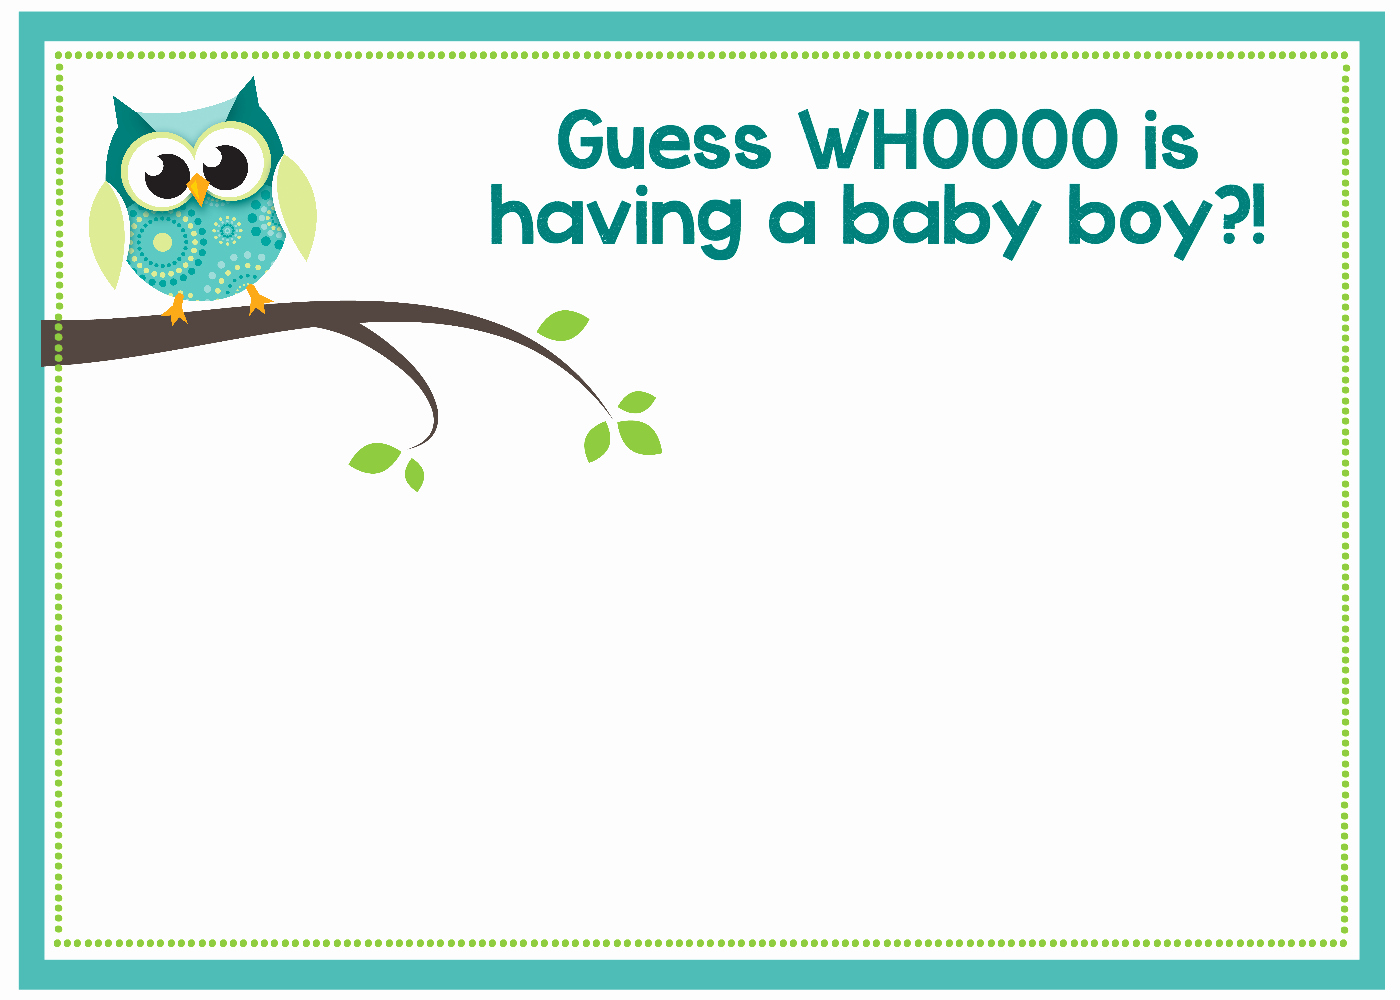 Baby Shower Invitation Template Free Awesome Free Printable Owl Baby Shower Invitations & Other